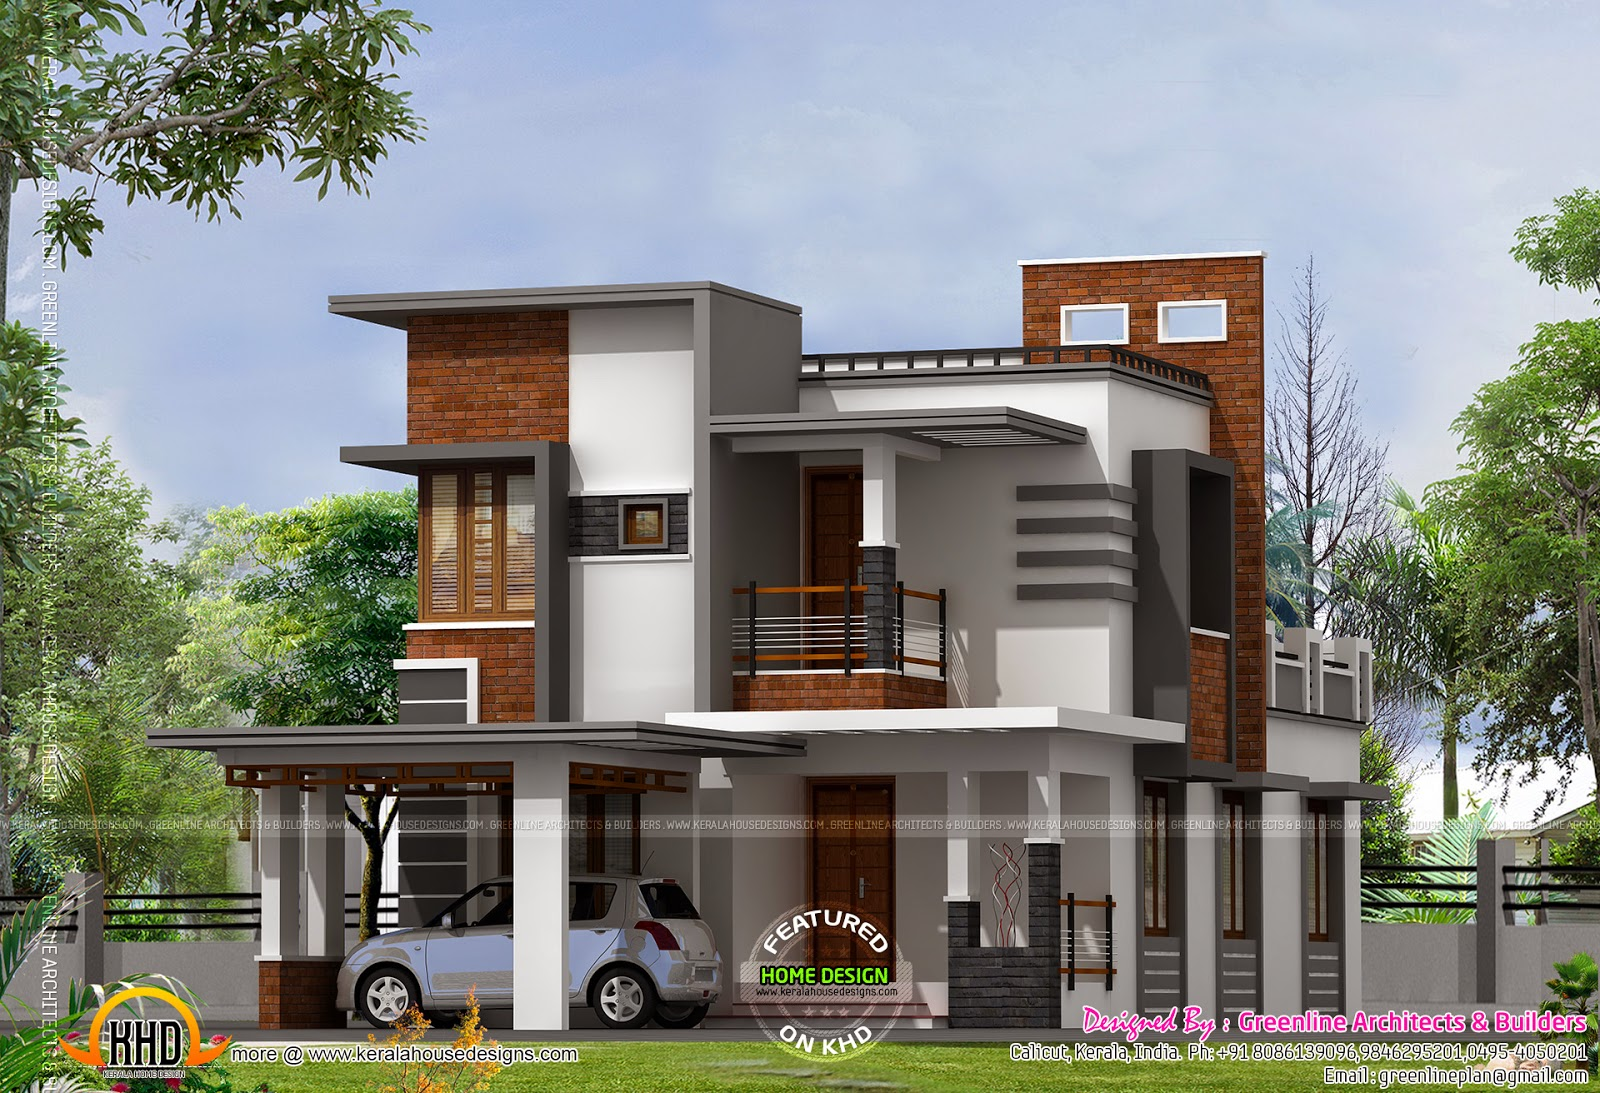 Low cost contemporary house kerala home design and floor for House designs with price